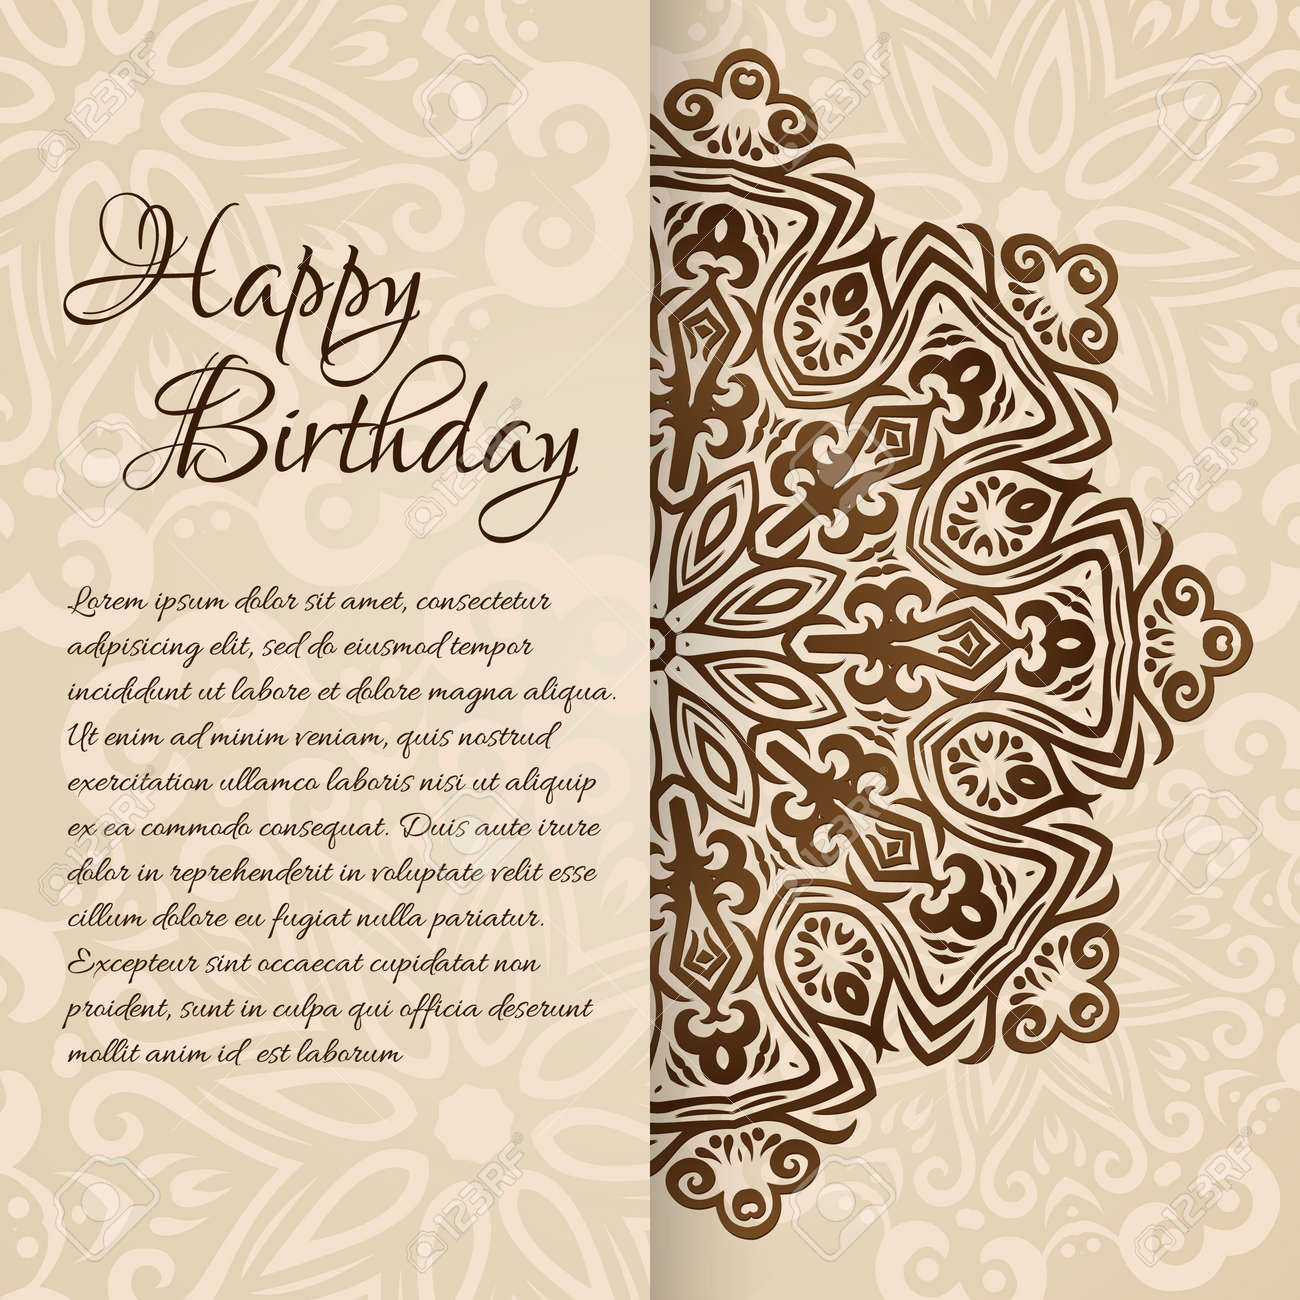 Lacy Vector Wedding Card Template Romantic Vintage Wedding ...